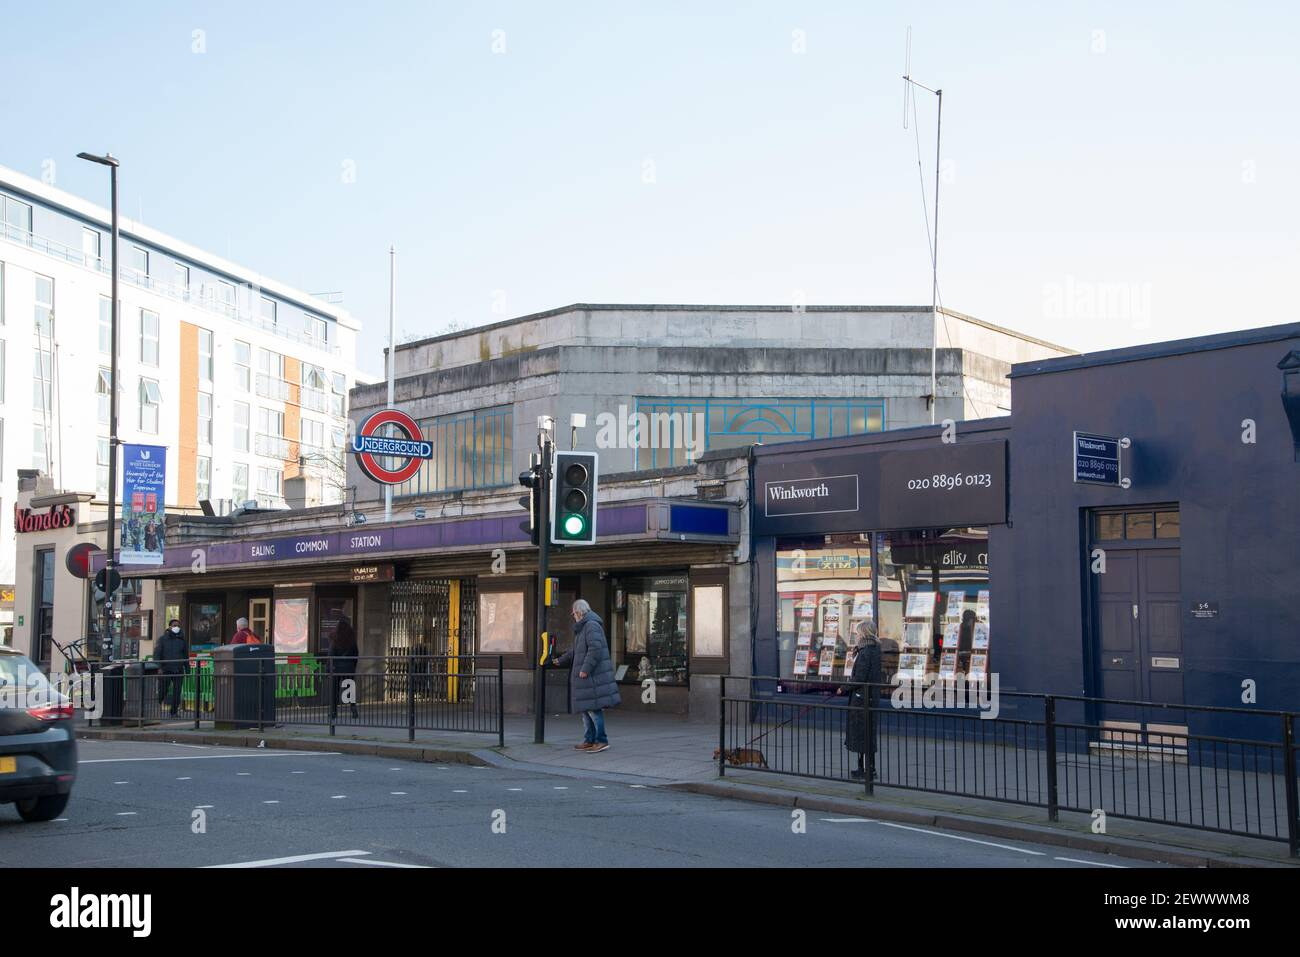 Ealing Common Underground Tube Station Art Deco Architecture by Charles Holden Stock Photo